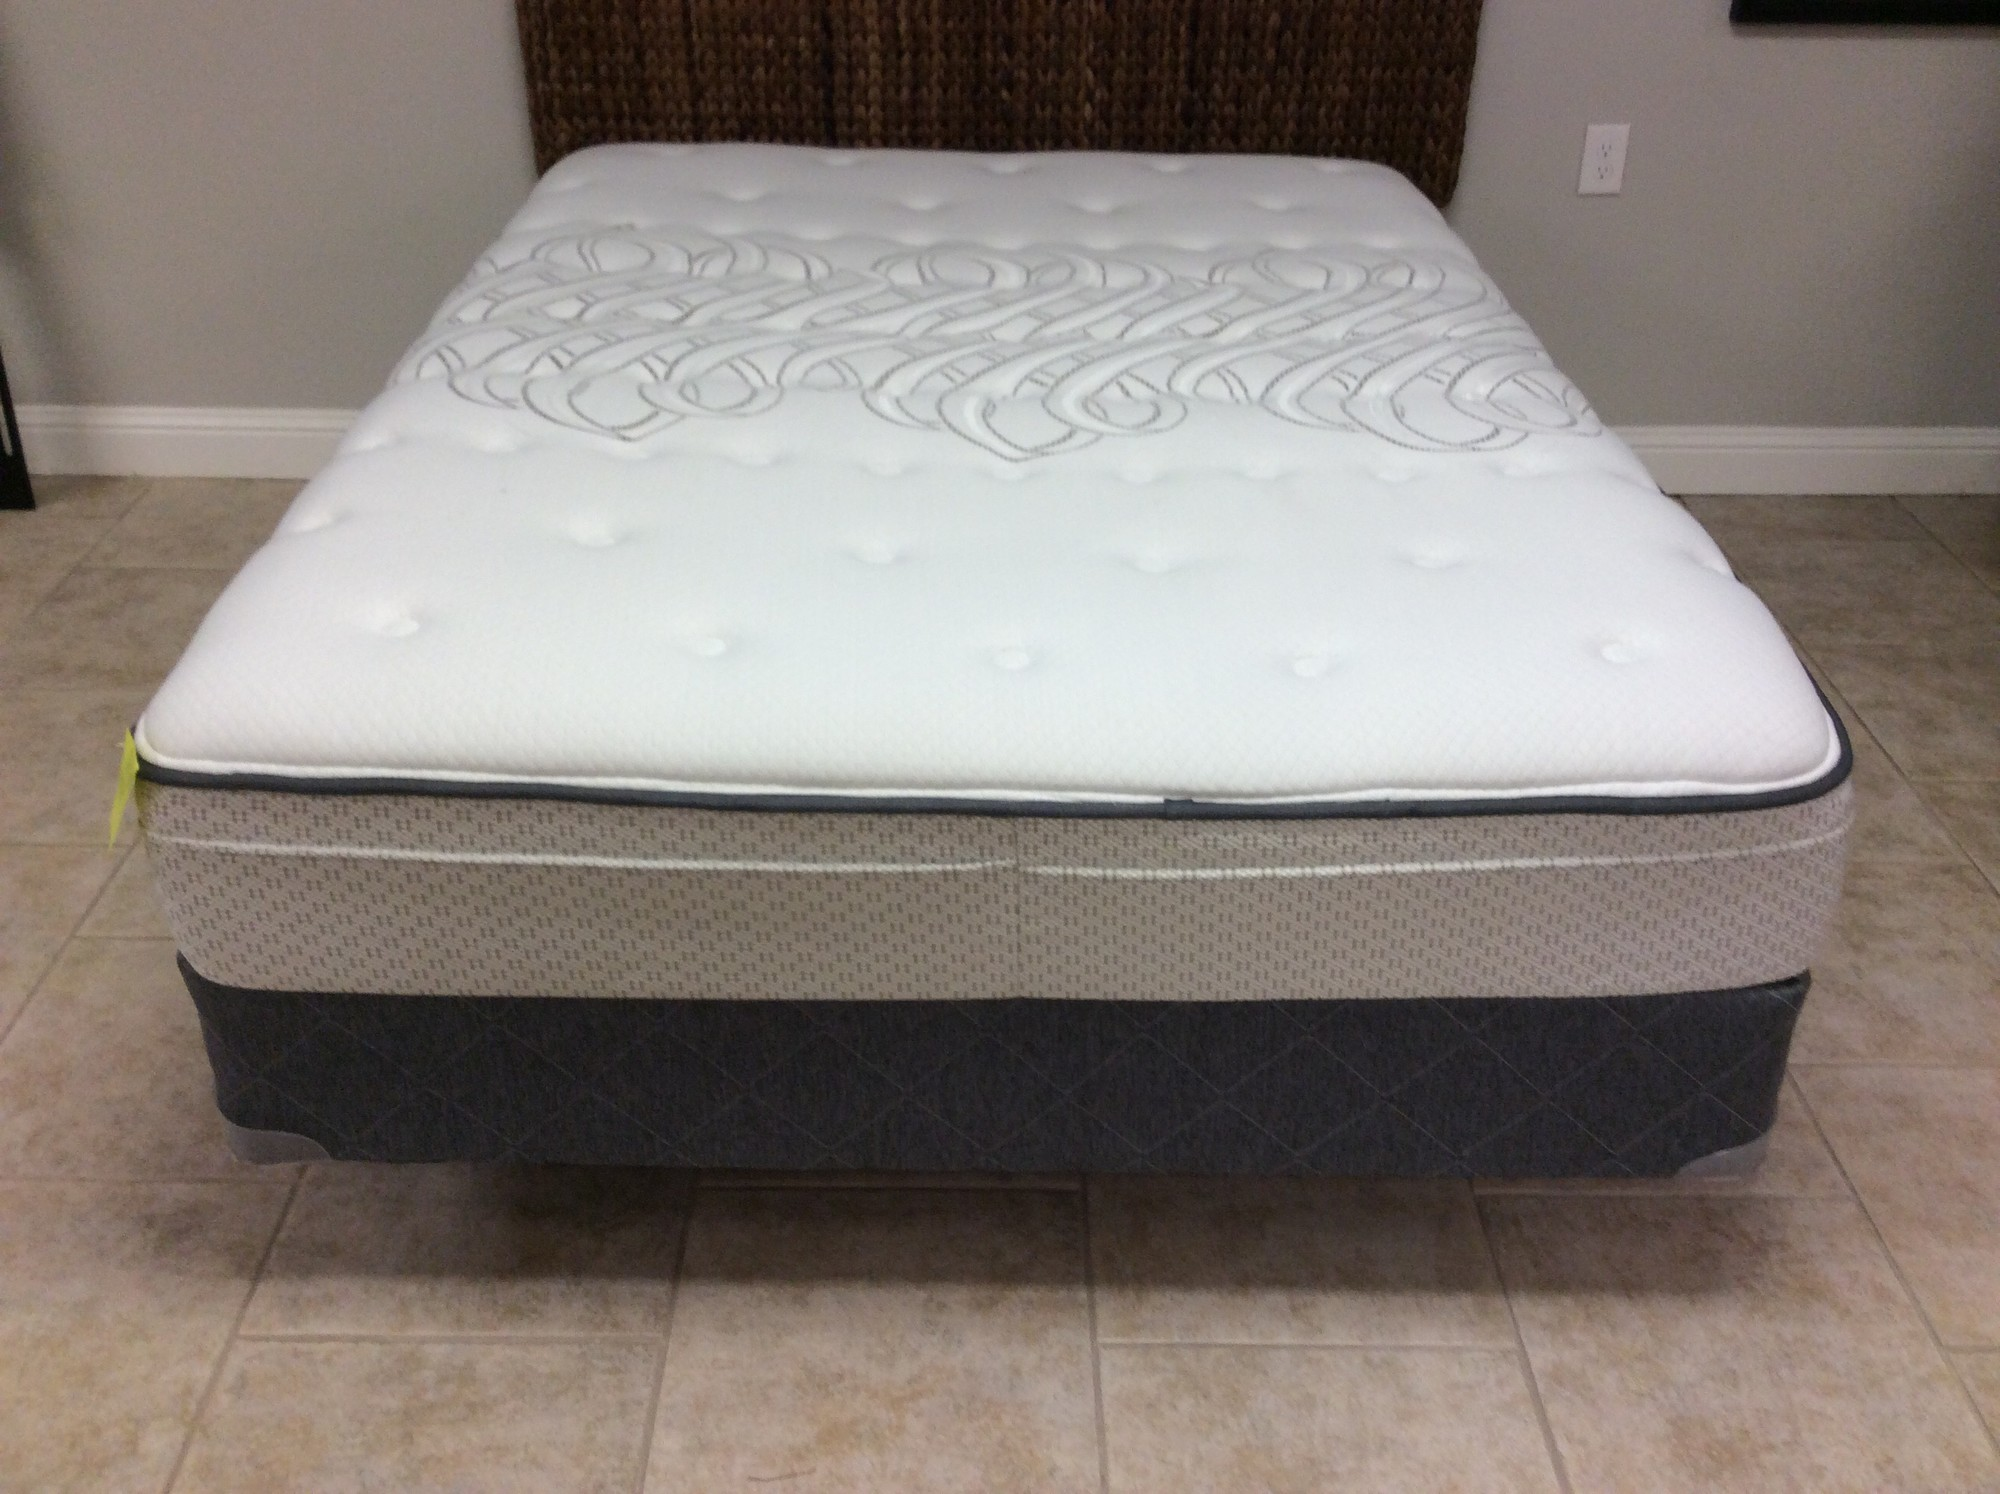 This mattress/box spring set by Sealy is in perfect condition! PERFECT! Doesn't appear to ever have been used. The mattress is described as firm but I would call it plush and a little soft to the touch. Come by soon, it won't be here long!